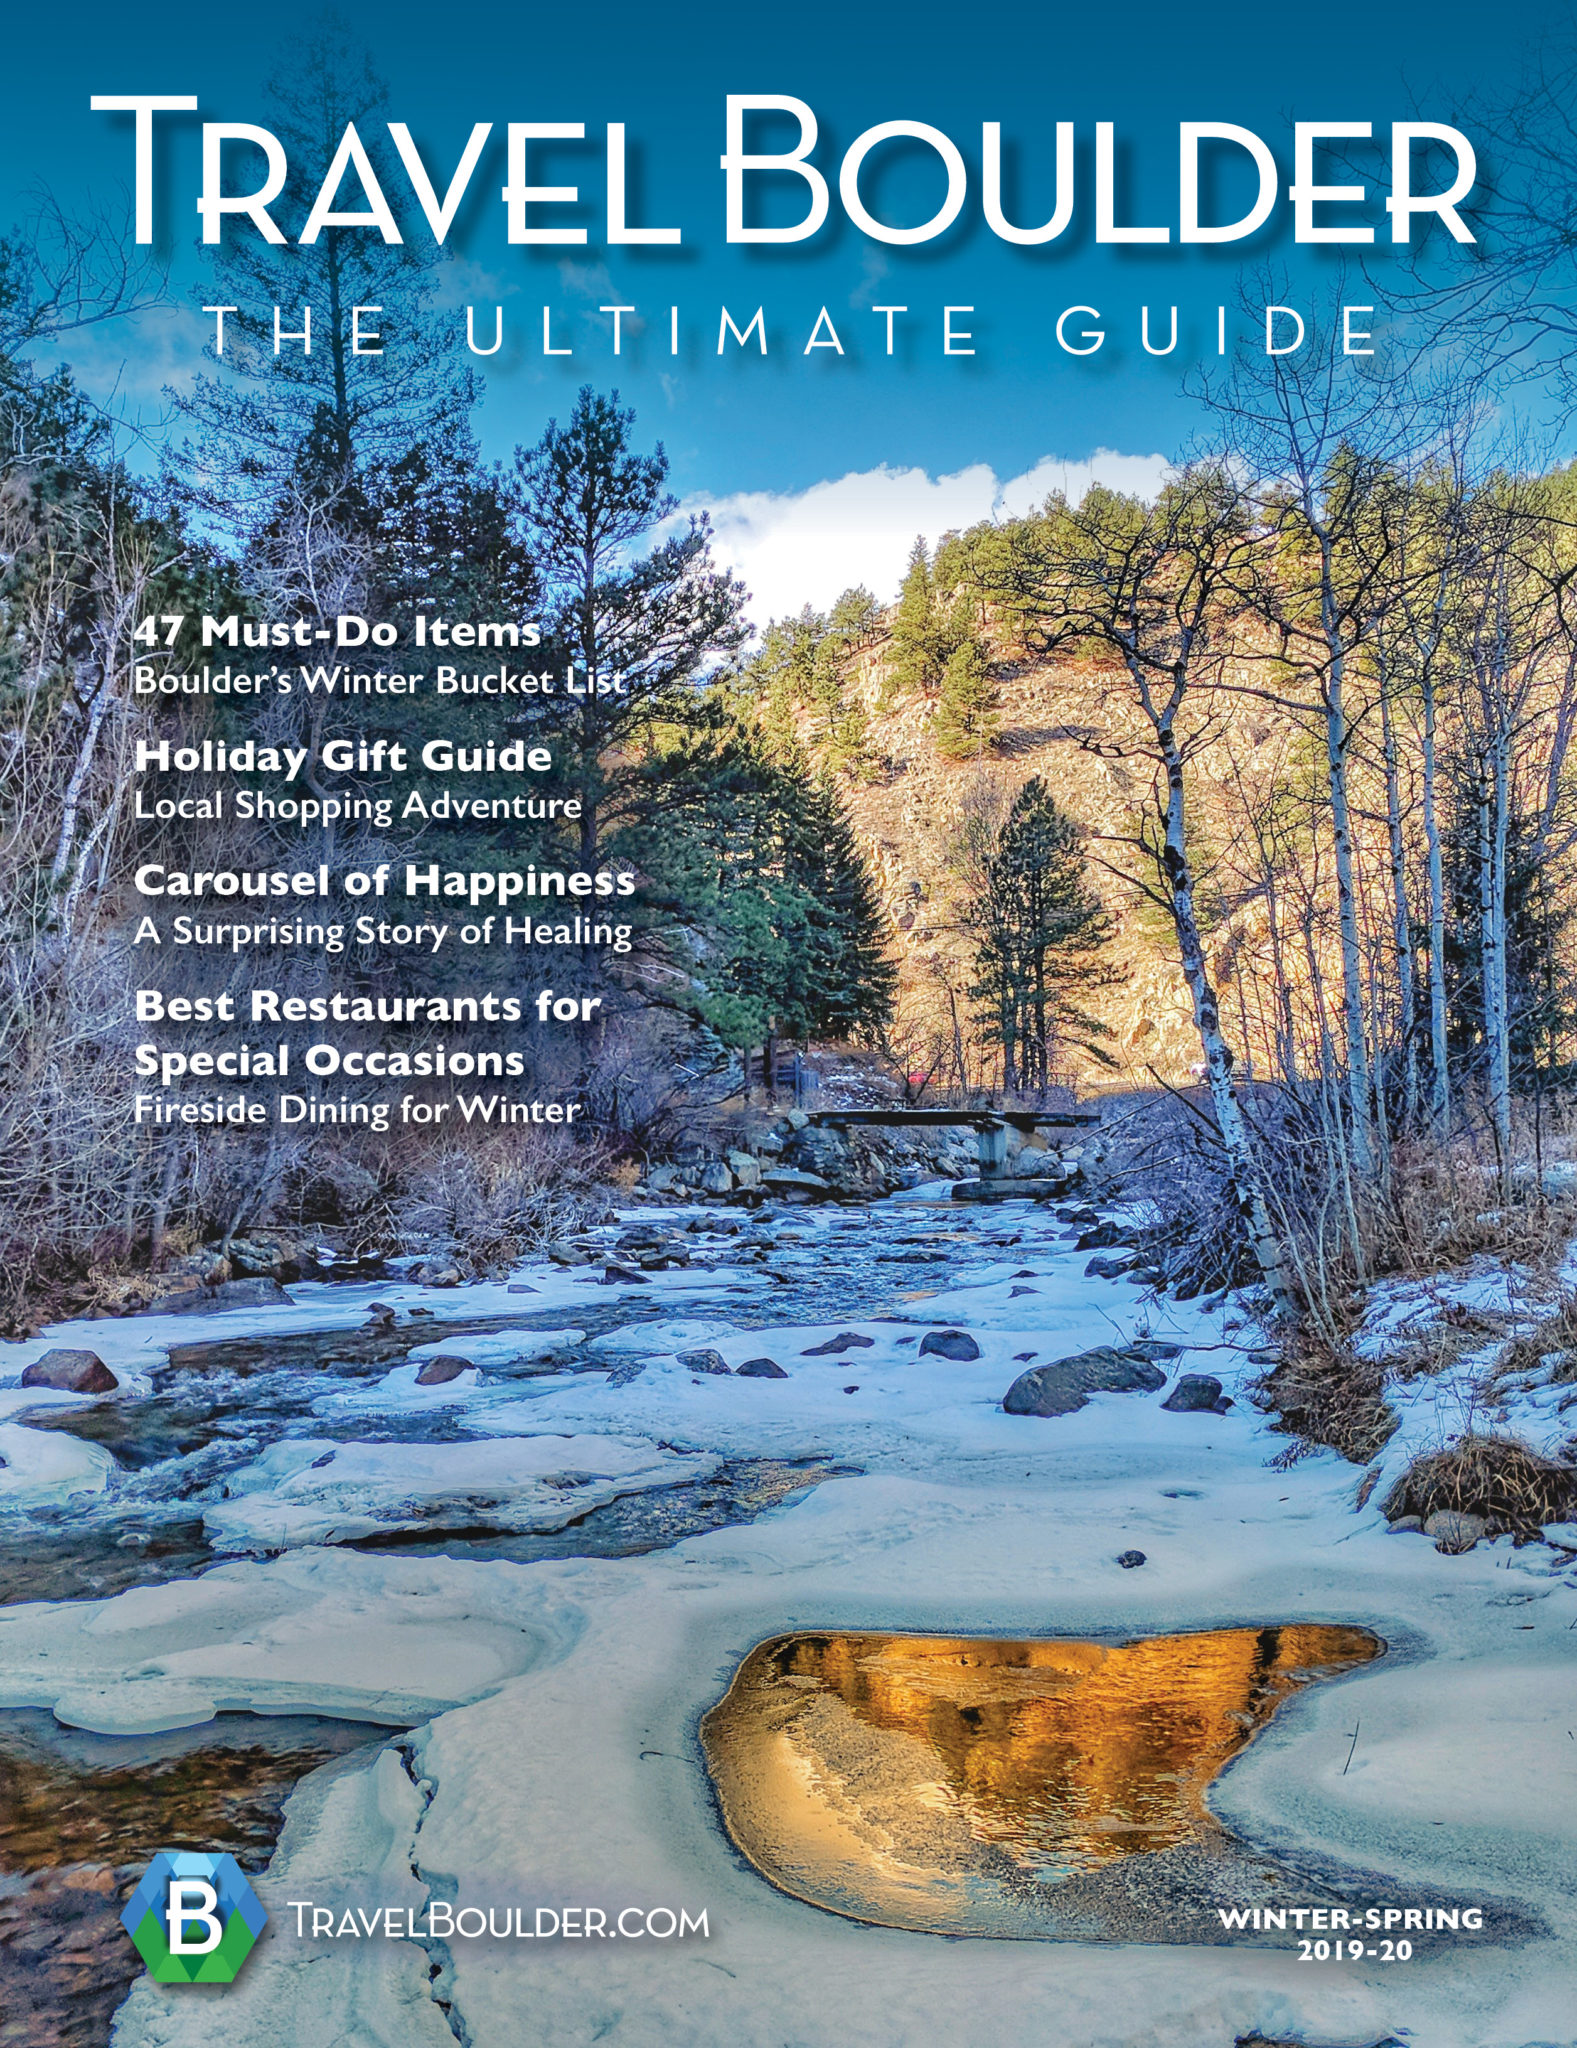 Travel Boulder Magazine